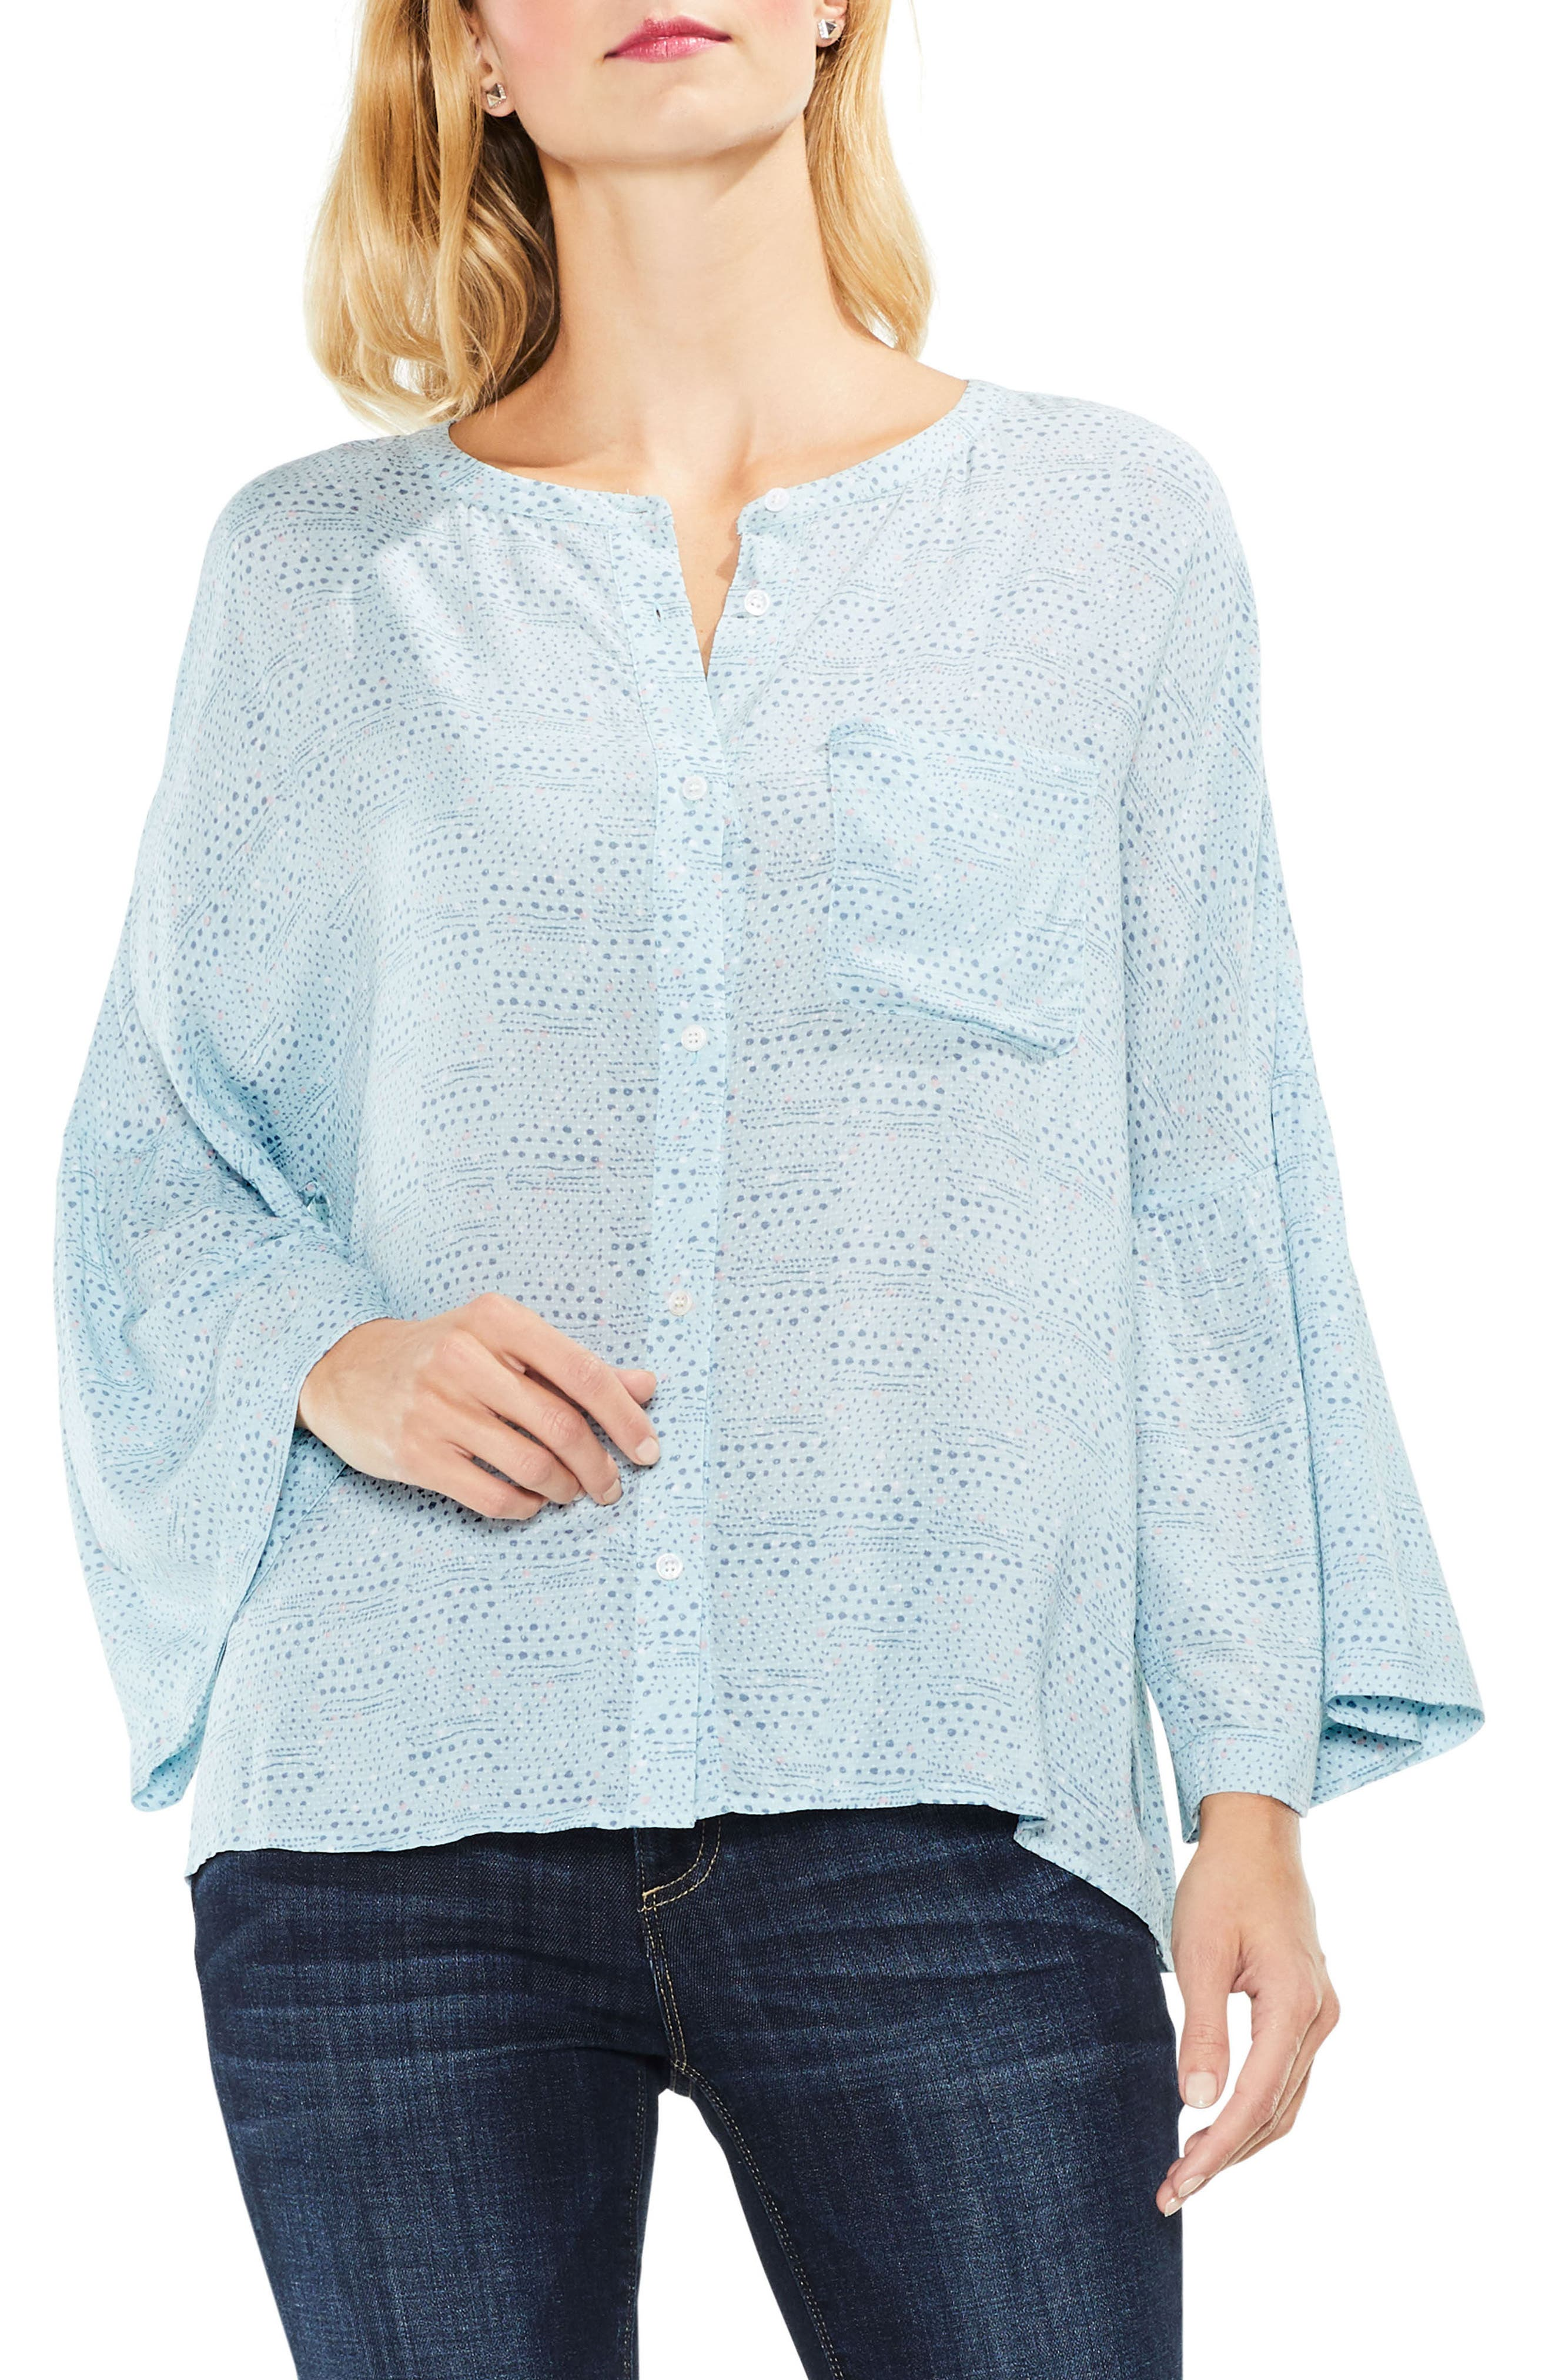 Main Image - Two by Vince Camuto Bell Sleeve Geo Dialogue Top